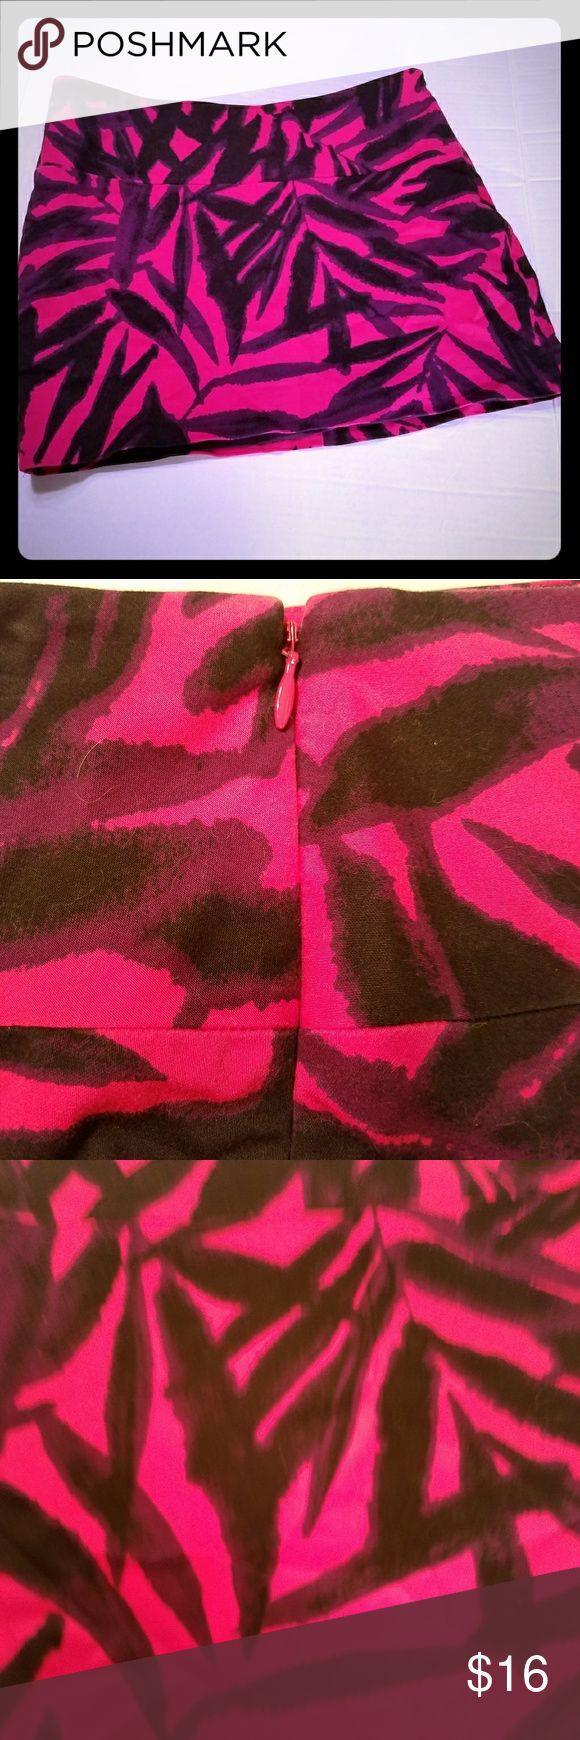 "Sz 6 Express Hot Pink Palm Leaf Mini Skirt Super cute Express Design Studio Mini Skirt  Side zip and fully lined  Waist measures flat 15"" Length 13.5"" Cotton/Spandex Express Skirts Mini"